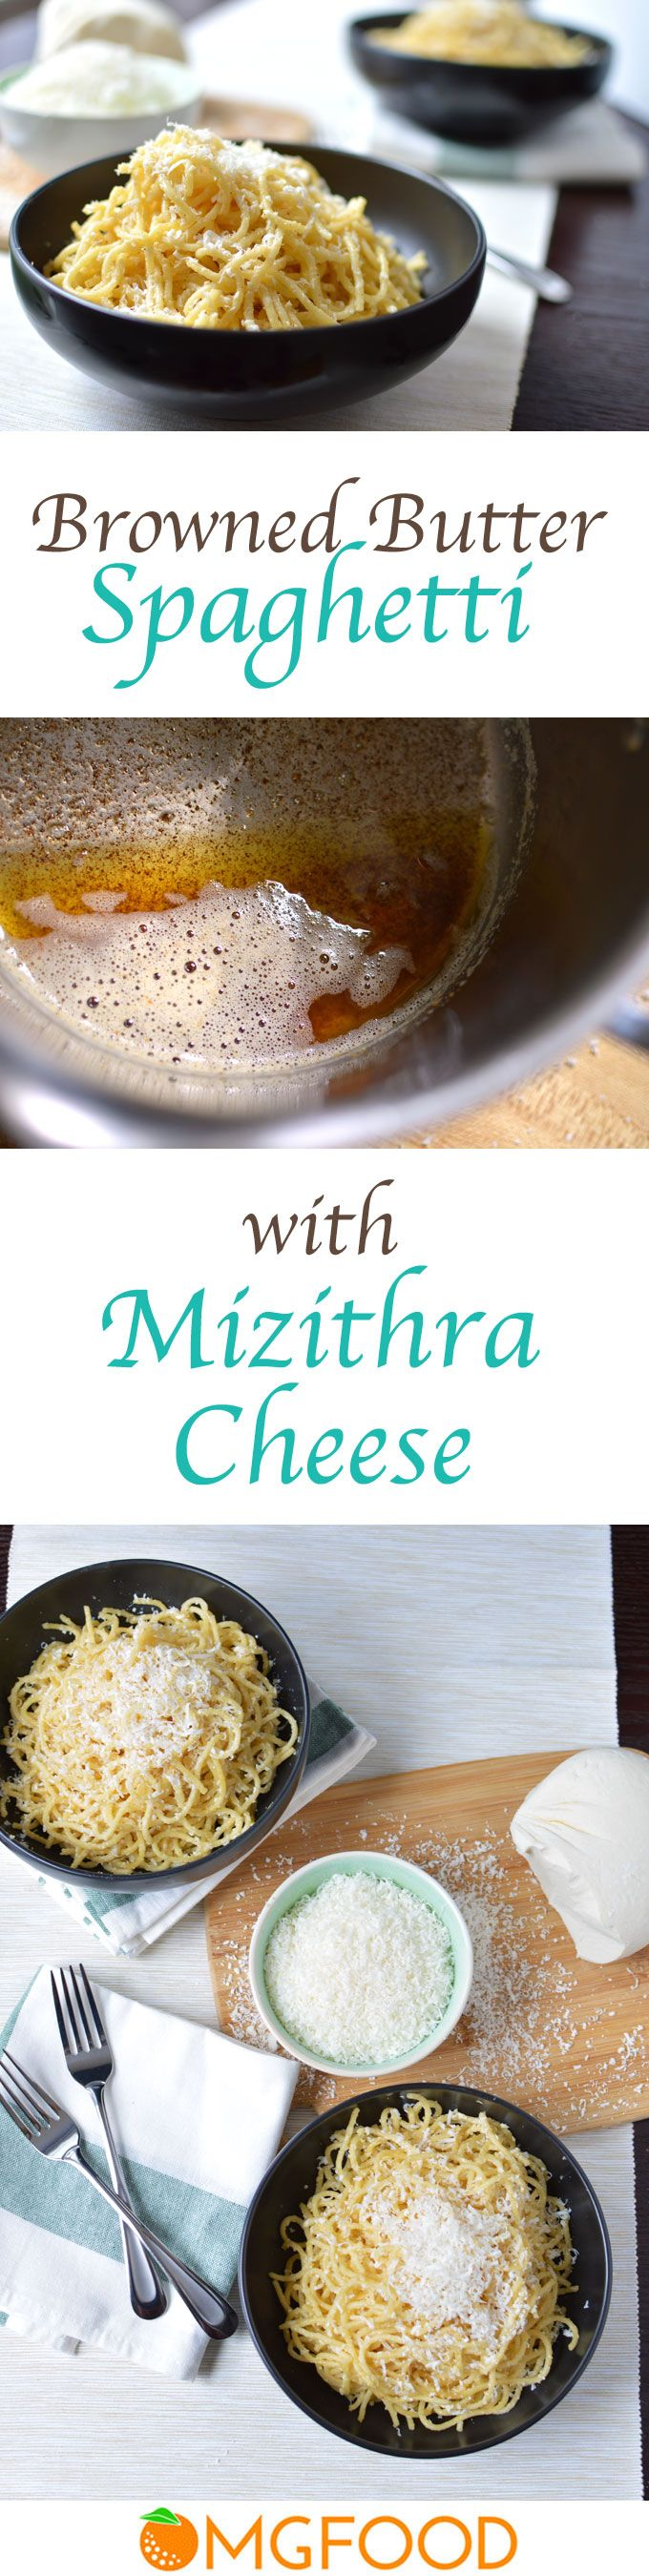 Spaghetti with Browned Butter and Mizithra Cheese - Made with just 3 ingredients! Brown butter and mizithra cheese are a delicious combo in this pasta dish.